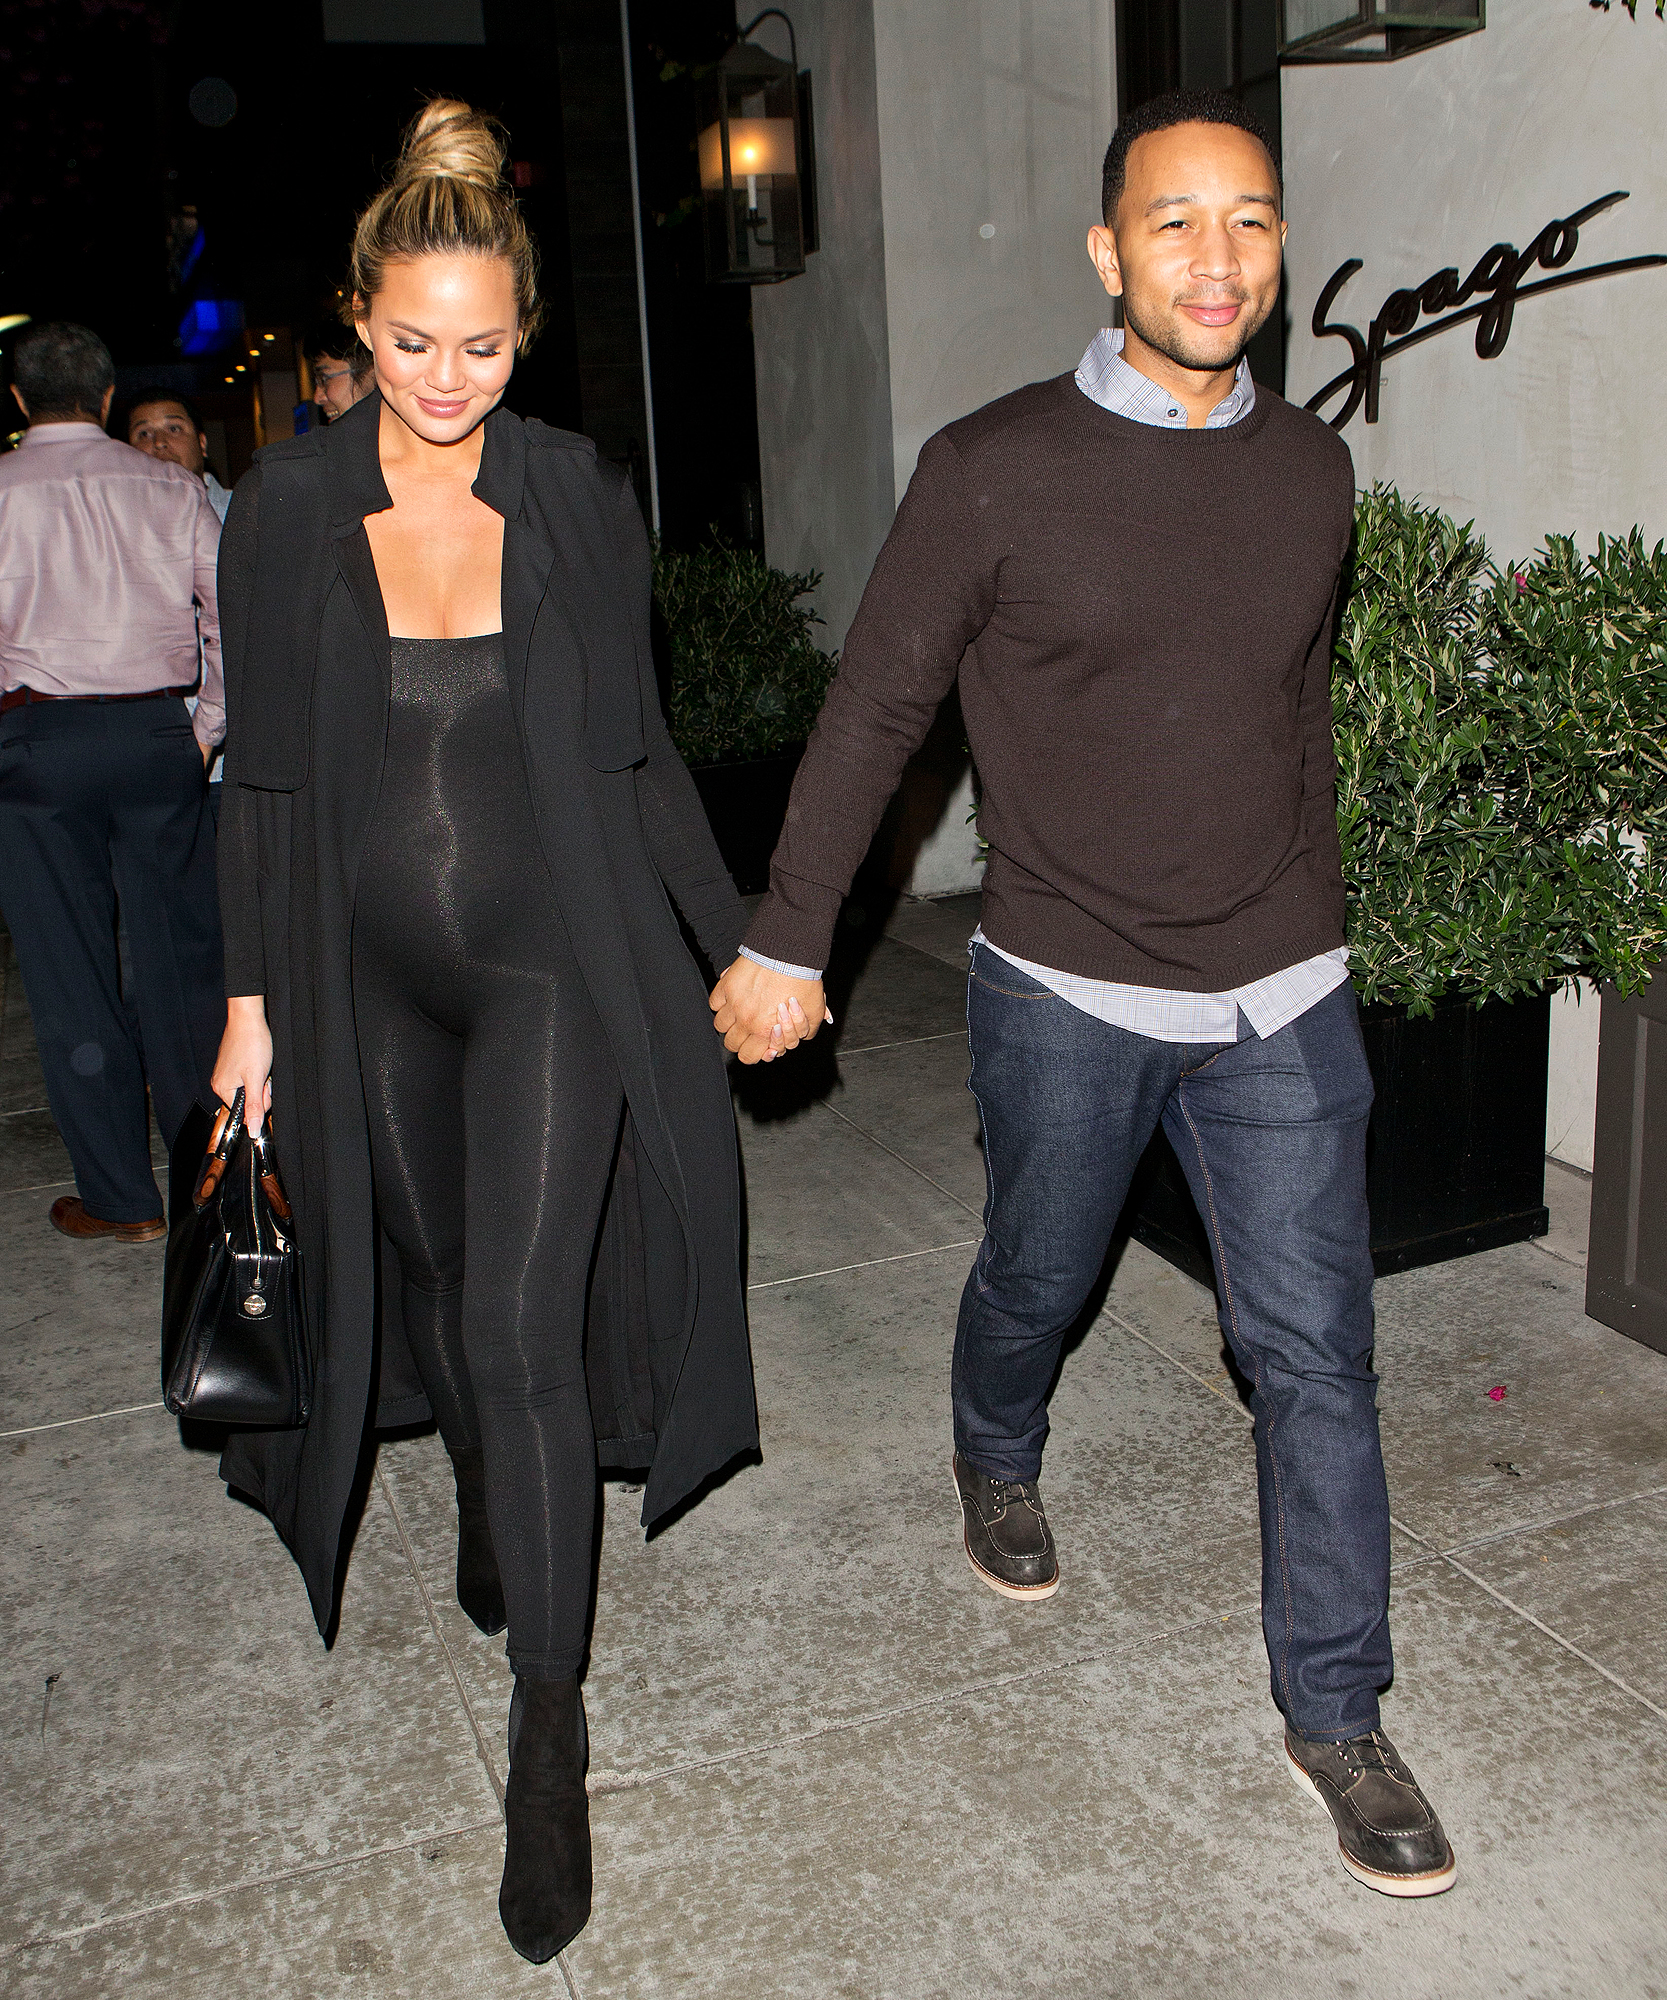 Chrissy Teigen Shows Off Her Baby Bump in Skin-Tight Bodysuit